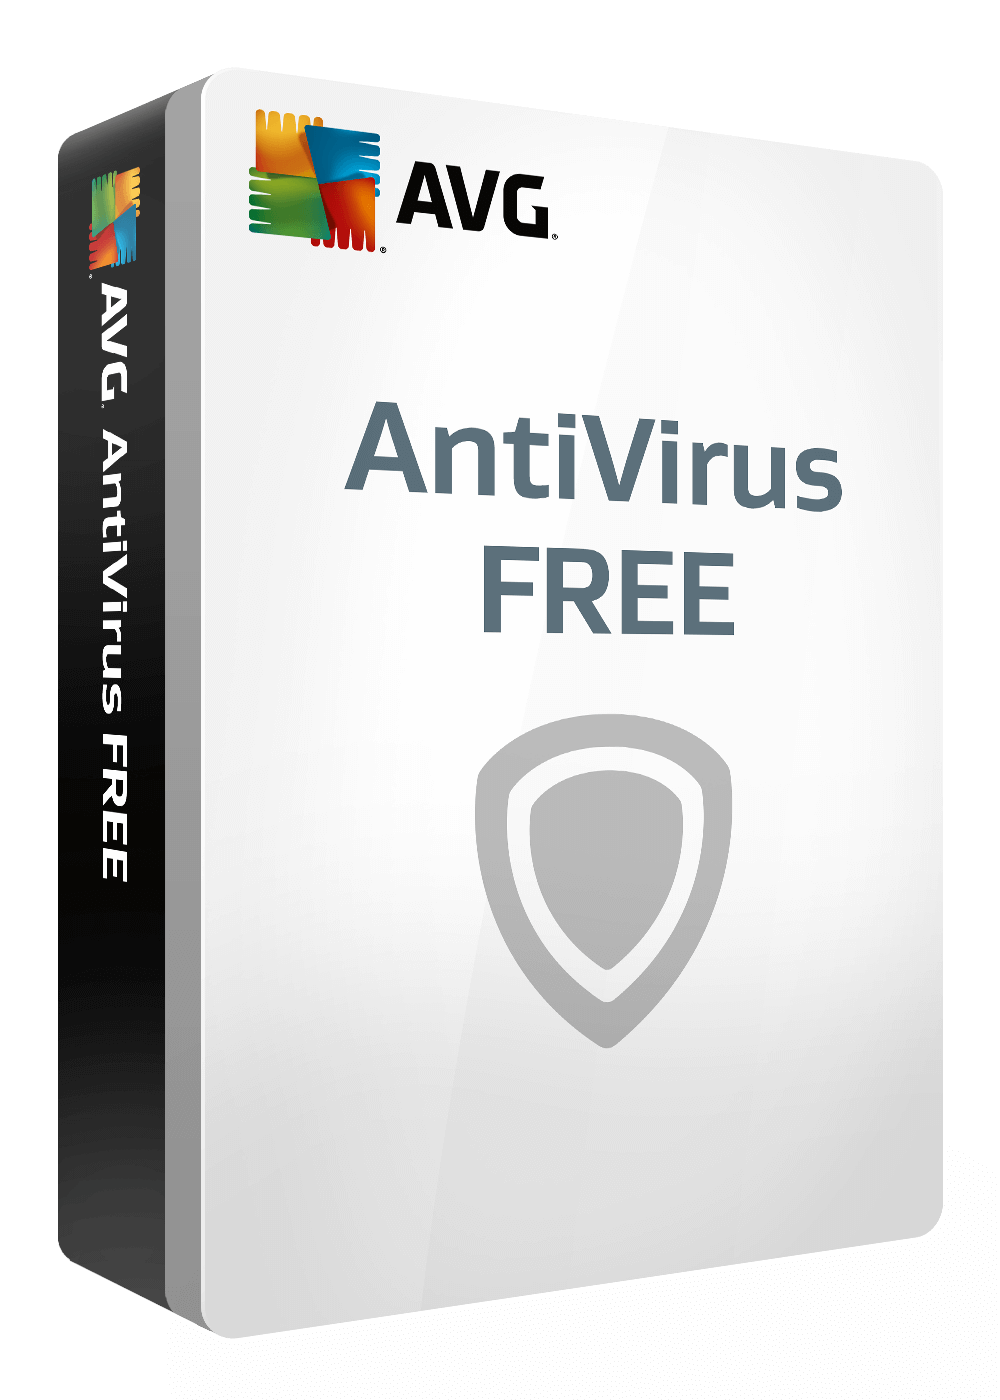 Download Free AntiVirus for Mac Mac Virus Scanner AVG AVG 2018 free Antivirus, VPN & TuneUp for All Your Devices